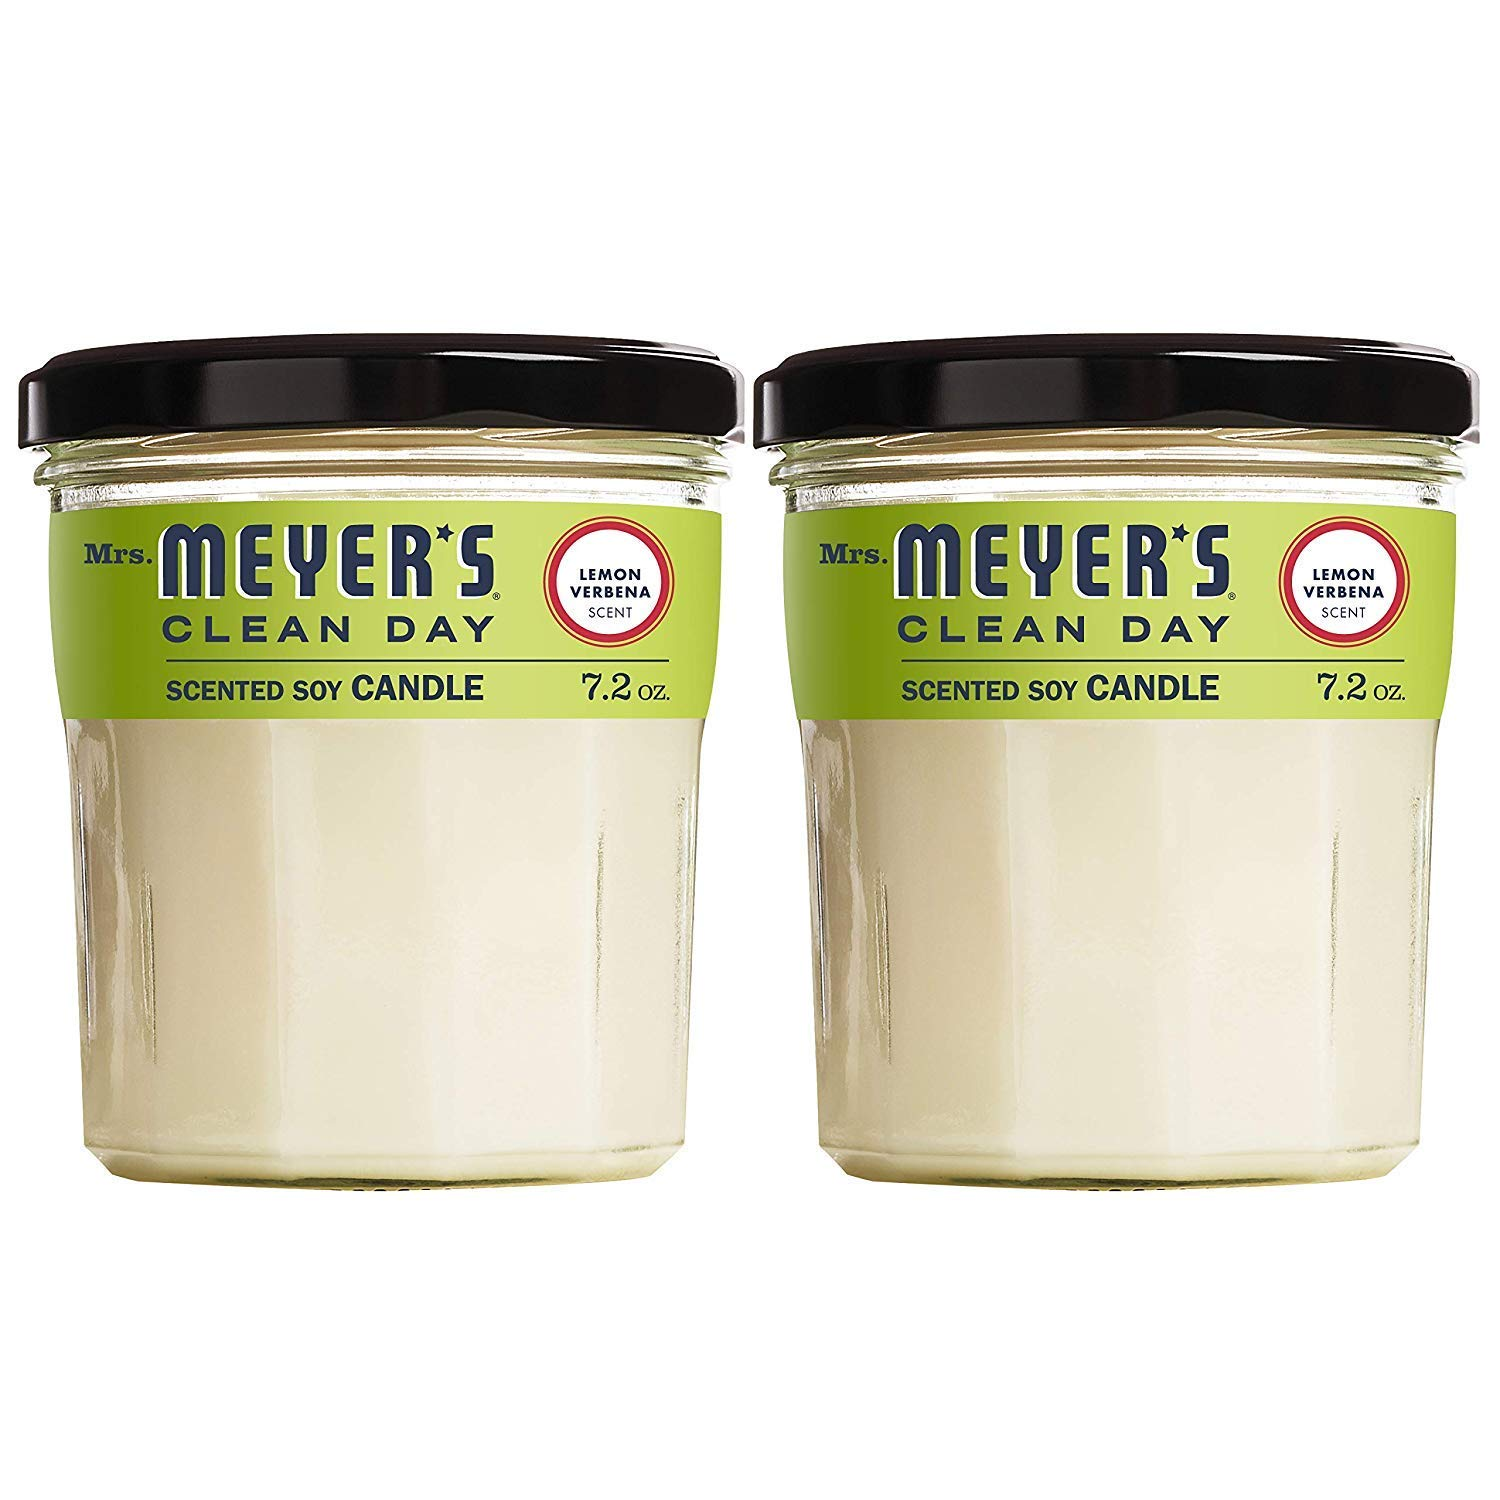 Mrs. Meyers Clean Day Scented Soy Candle, Lemon Verbena, Candle, 7.2 Ounce